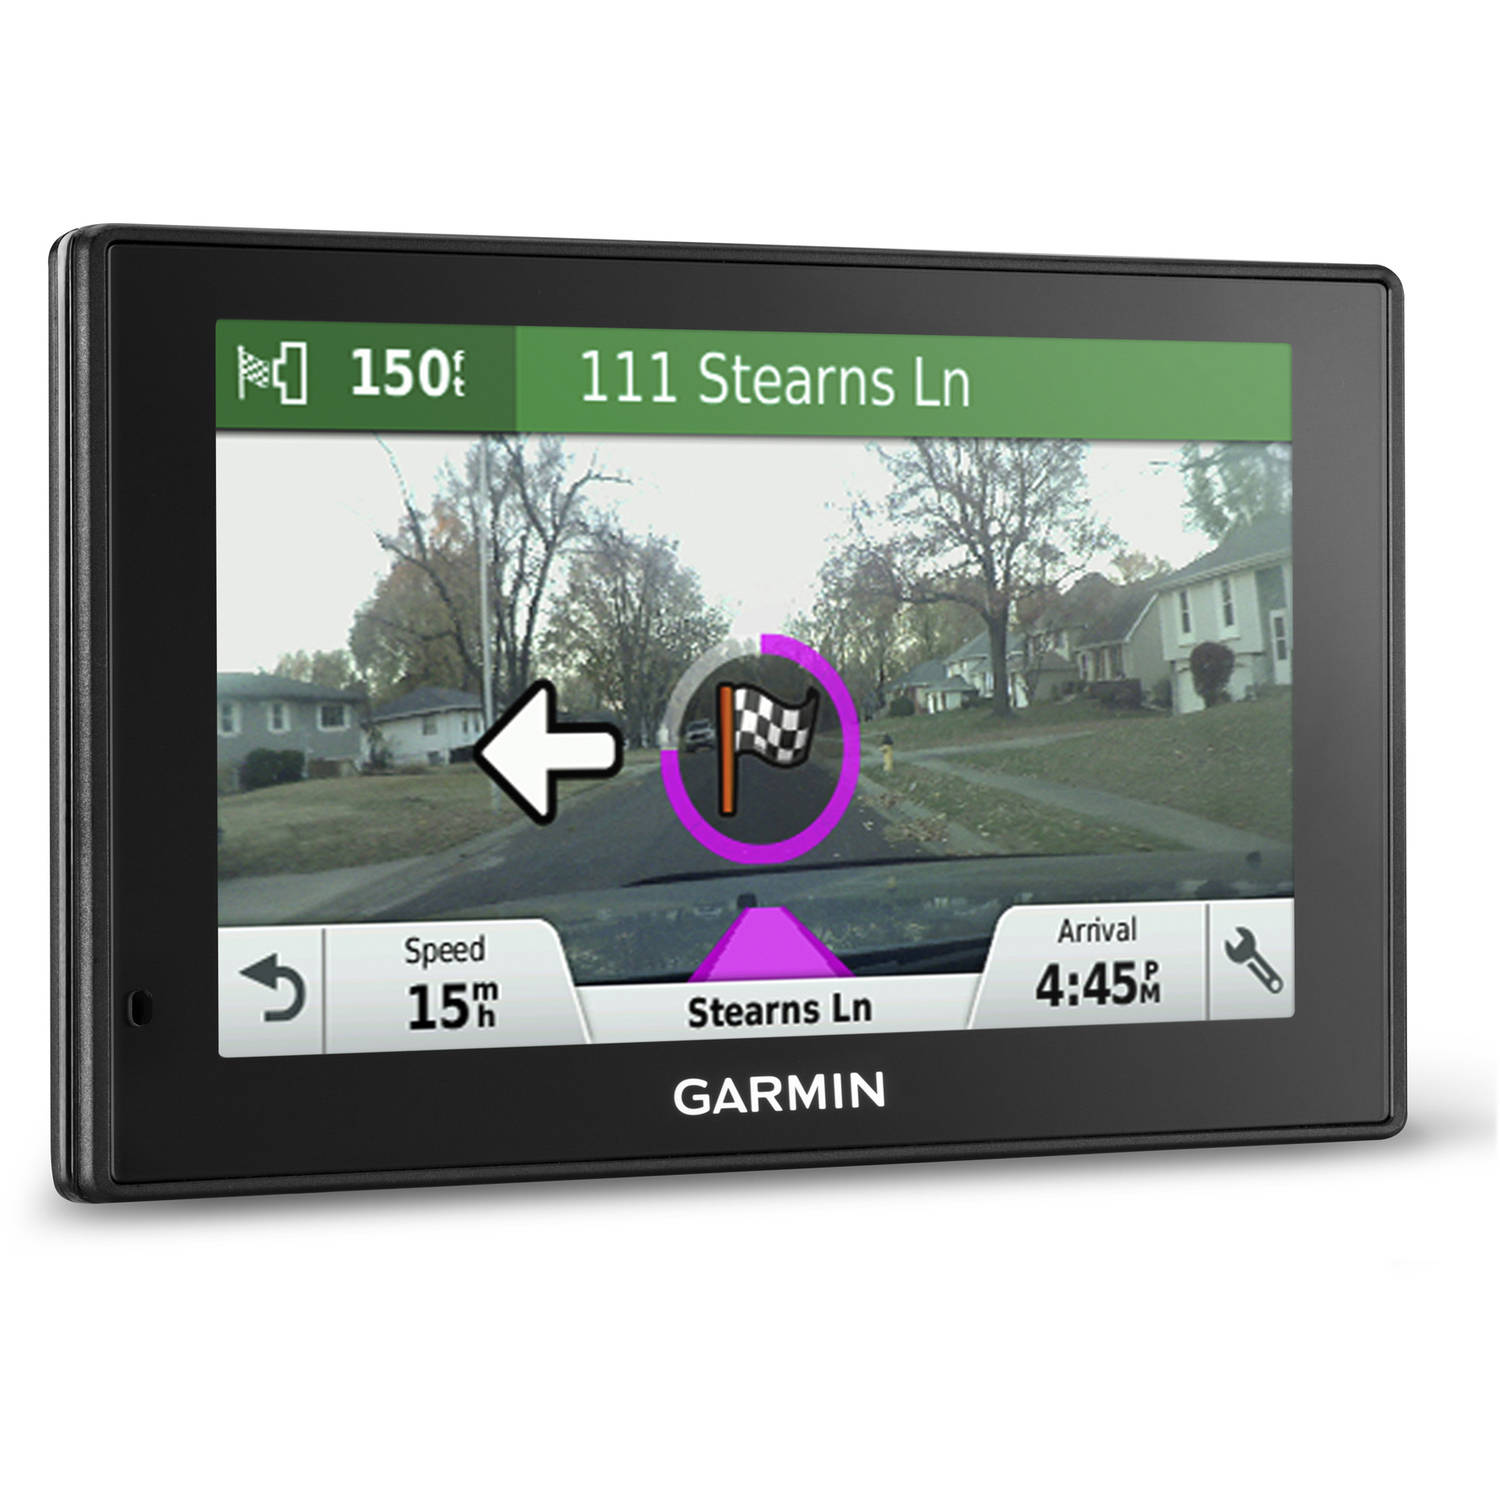 Garmin DriveAssist 50LMT Automobile Portable GPS Navigator - Portable, Mountable (010-01541-01)